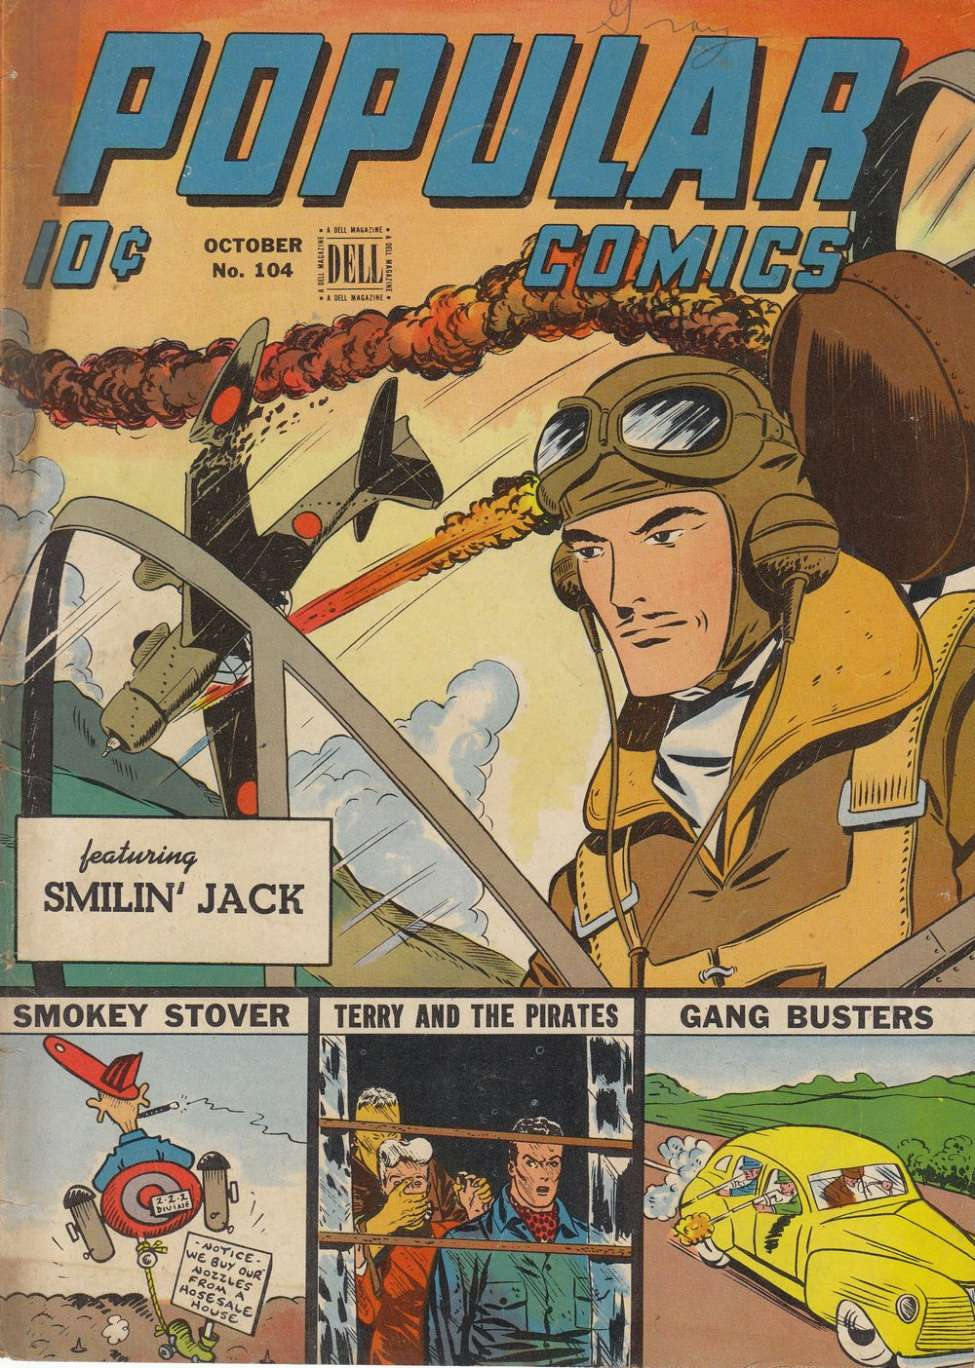 Comic Book Cover For Popular Comics #104